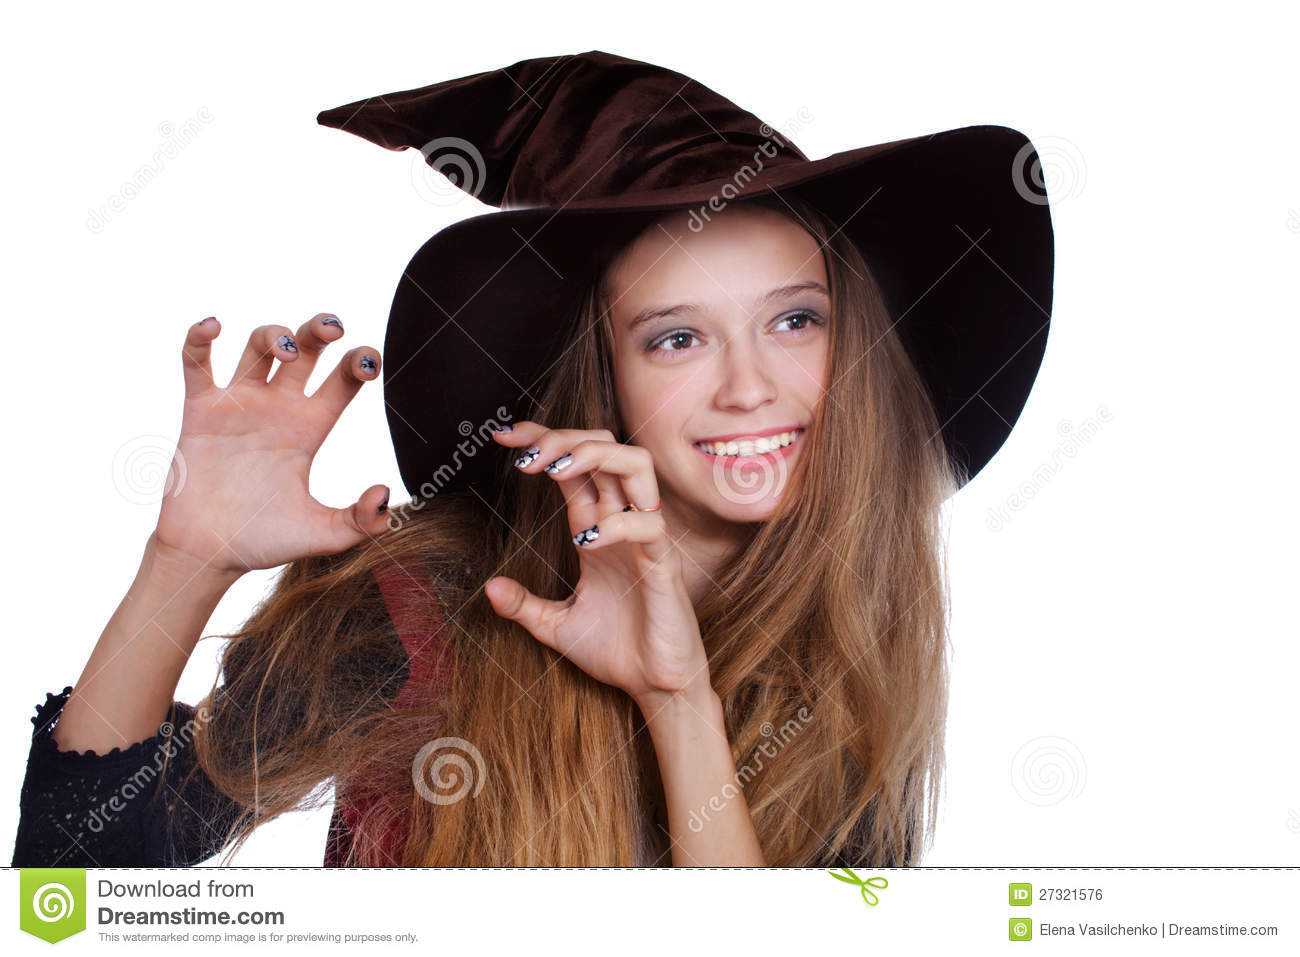 Download comp  sc 1 st  Dreamstime.com & Teen Girl Wearing Halloween Witch Costume Stock Photo - Image of ...